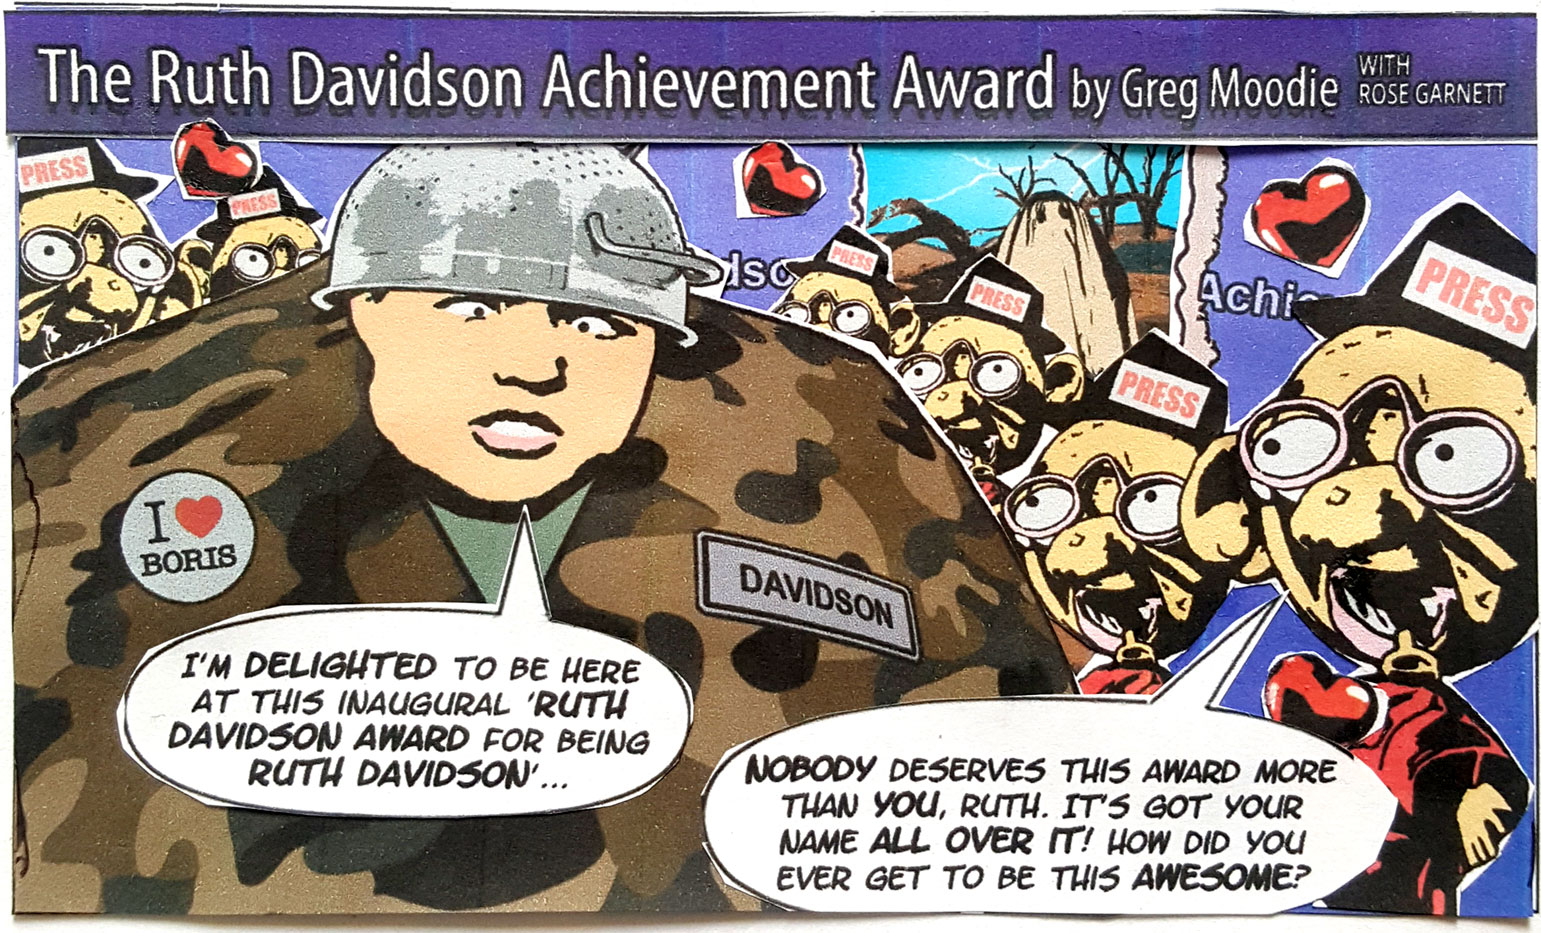 The Ruth Davidson Achievement Award